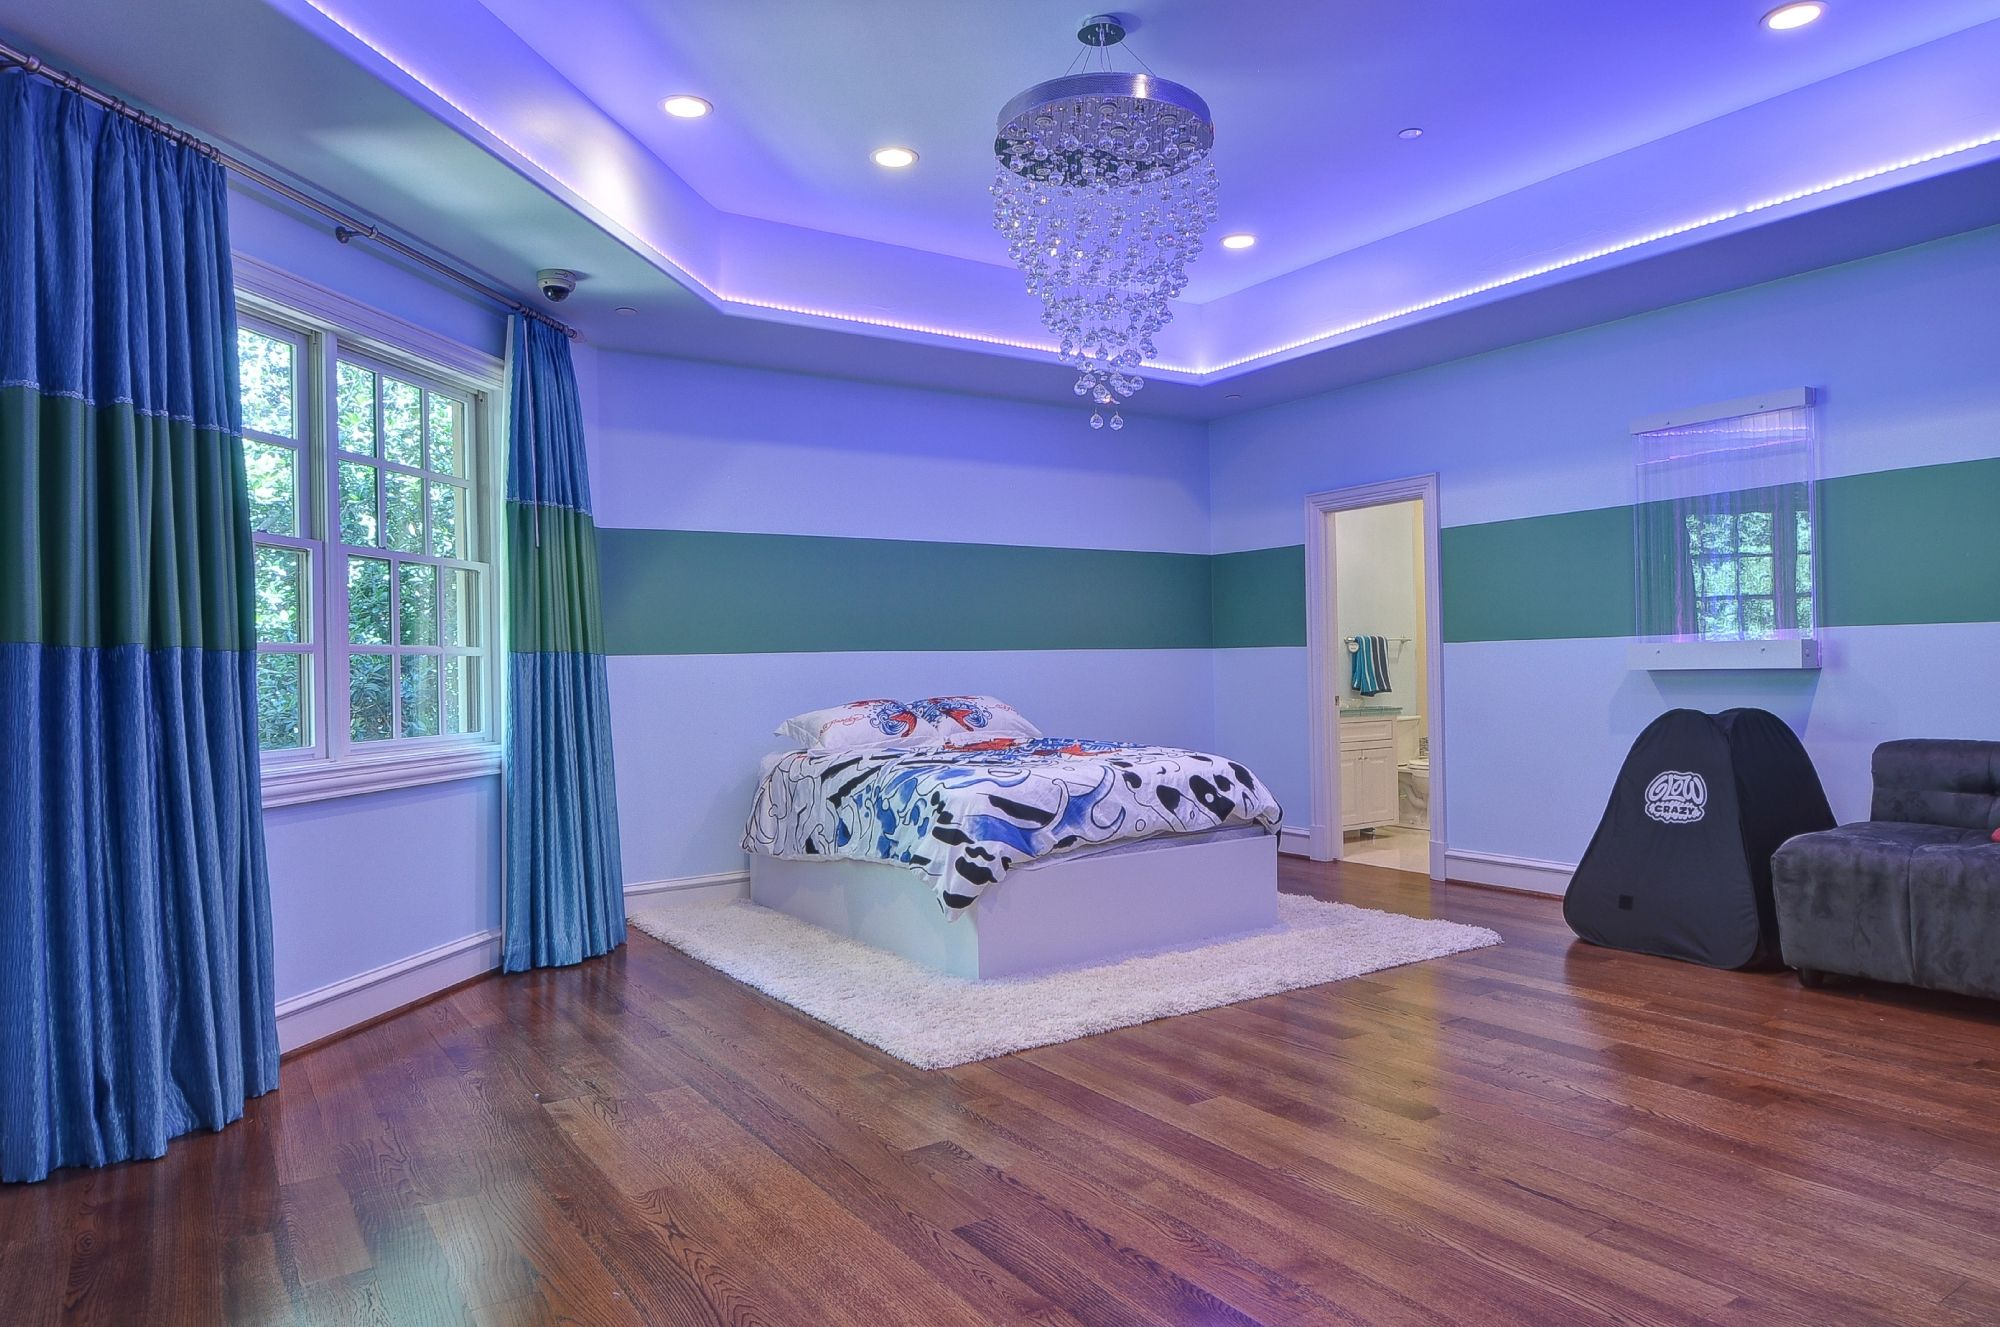 This is one of seven bedrooms at 9520 Hathaway Street in